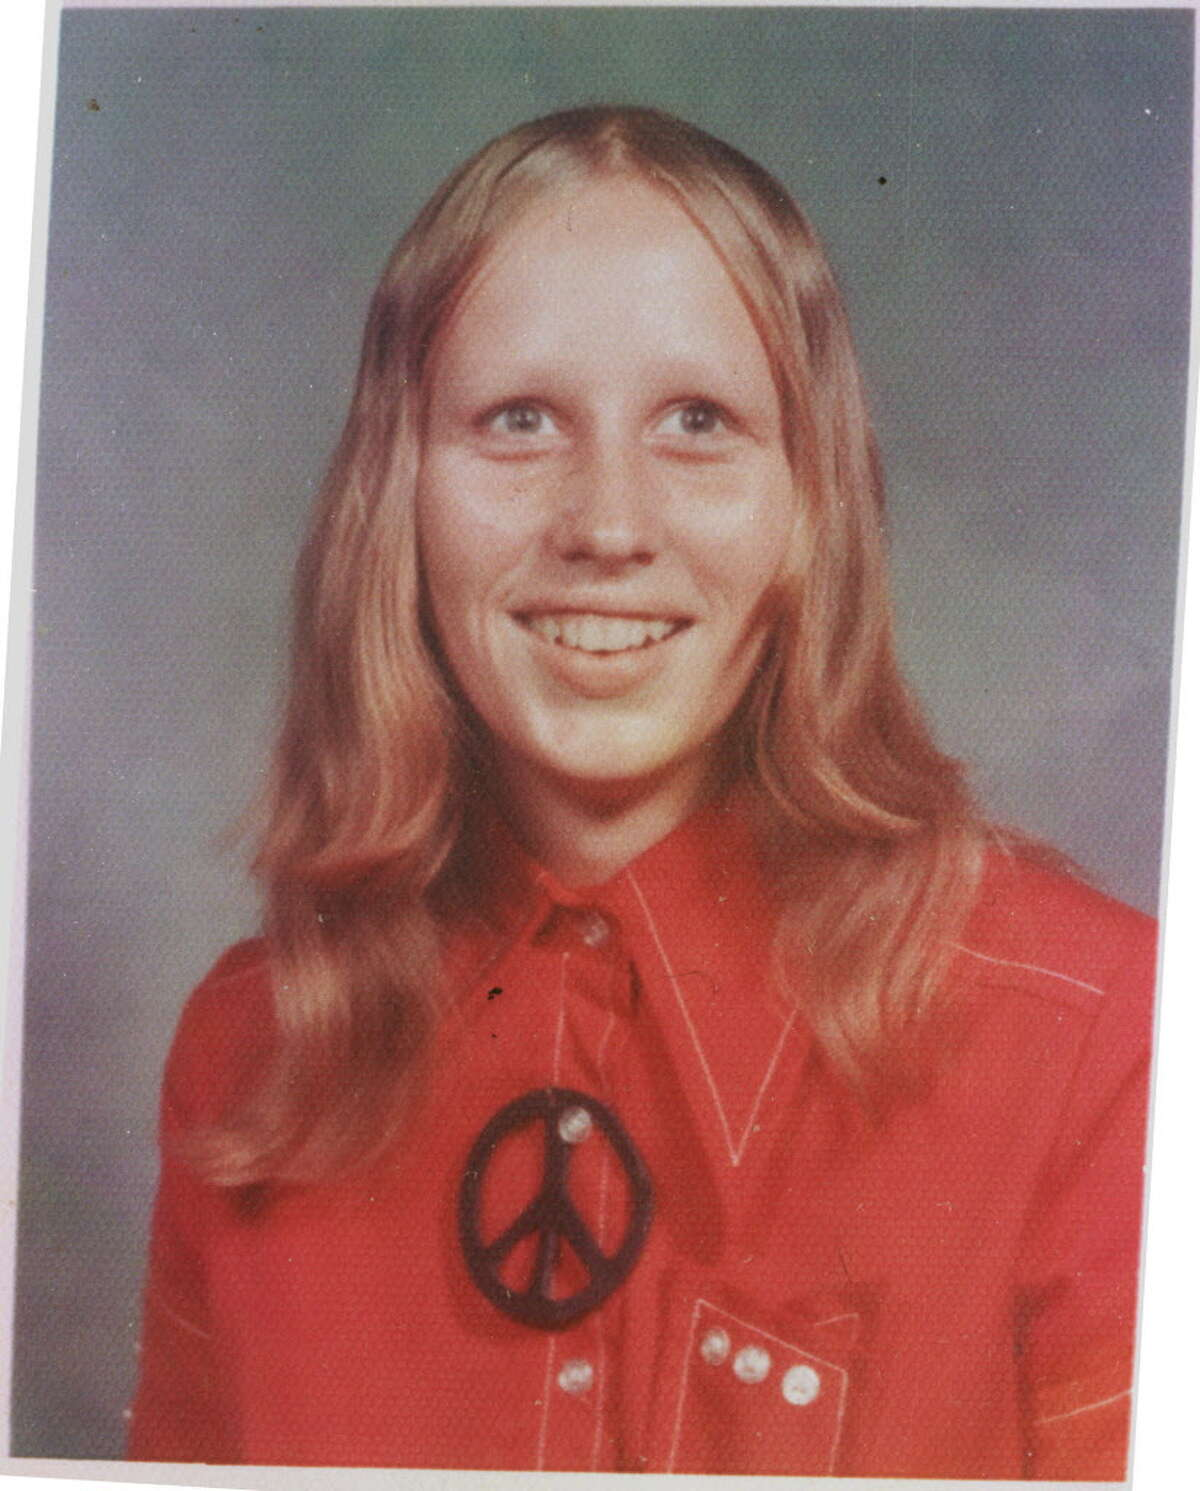 Inez Deaton as a senior in high school. Deaton was killed in 1979.